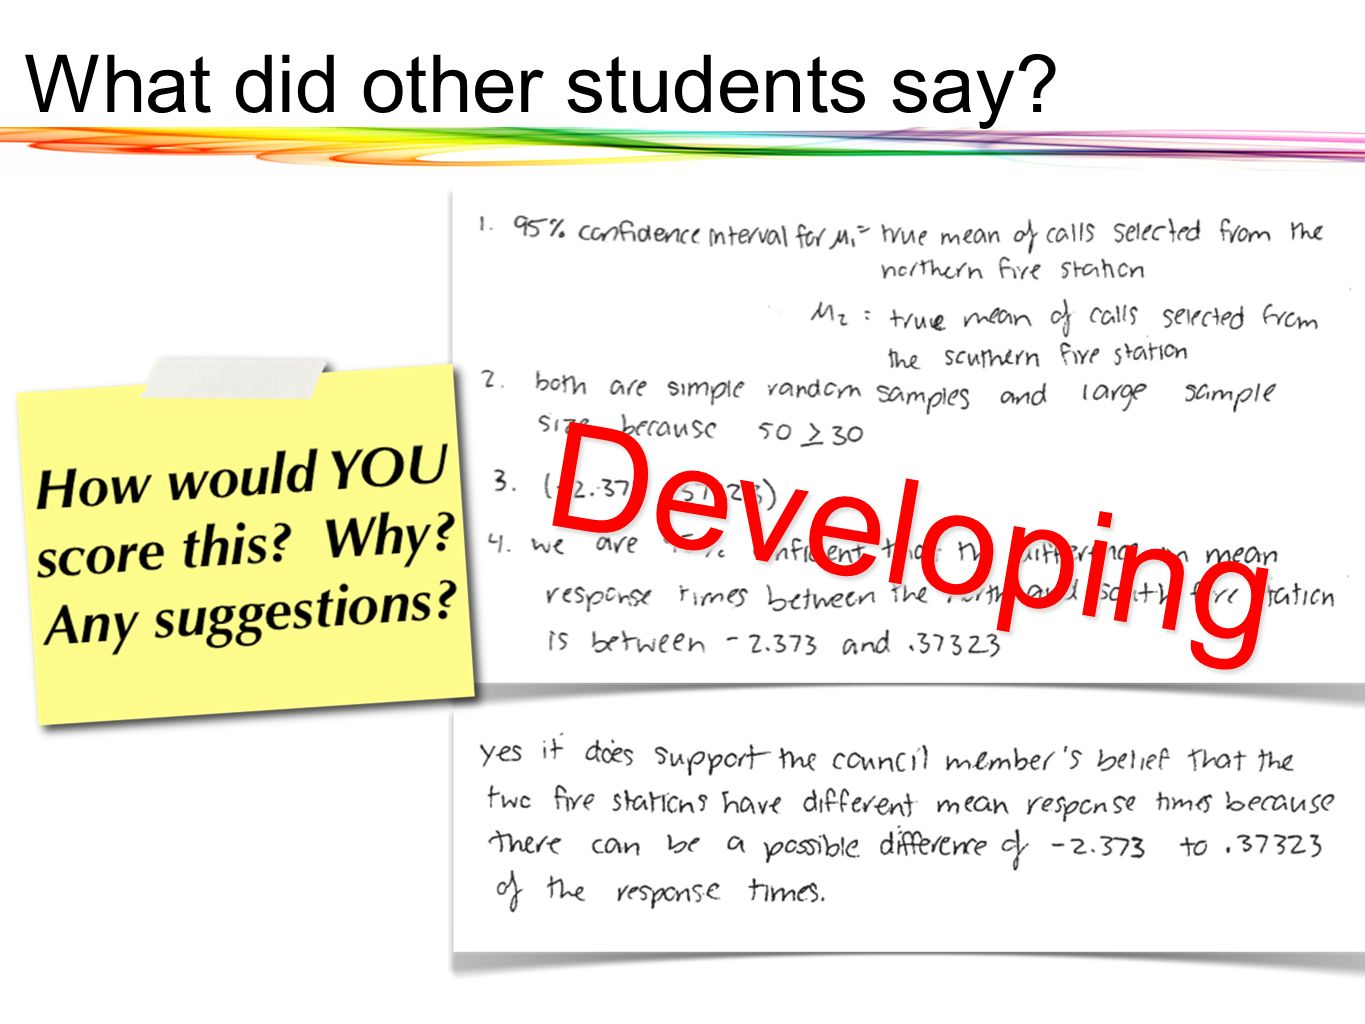 Developing What did other students say